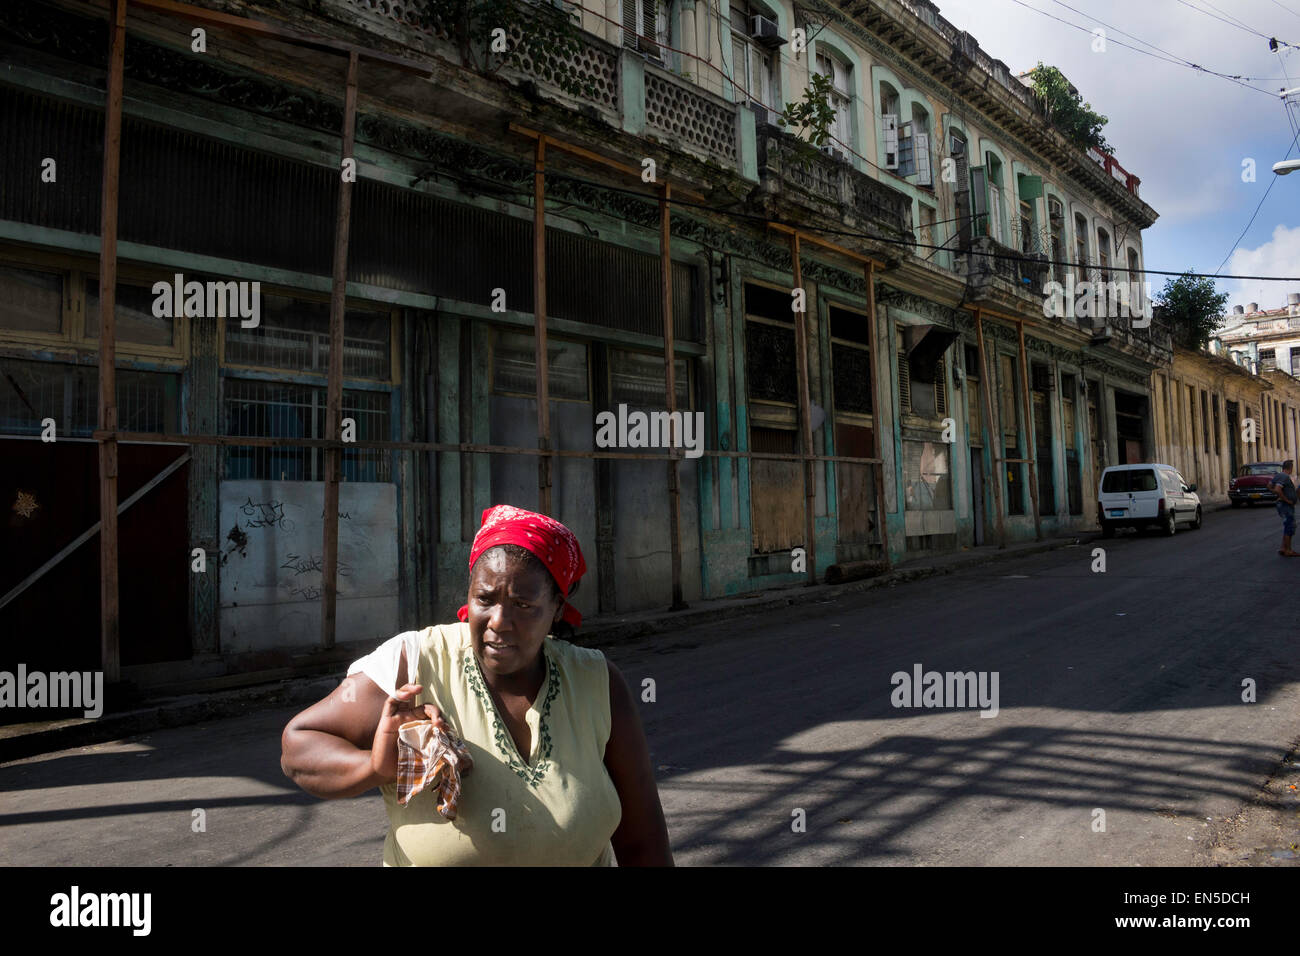 Cuban woman walking in street Havana with collapsing houses underpin by wooden masts - Stock Image